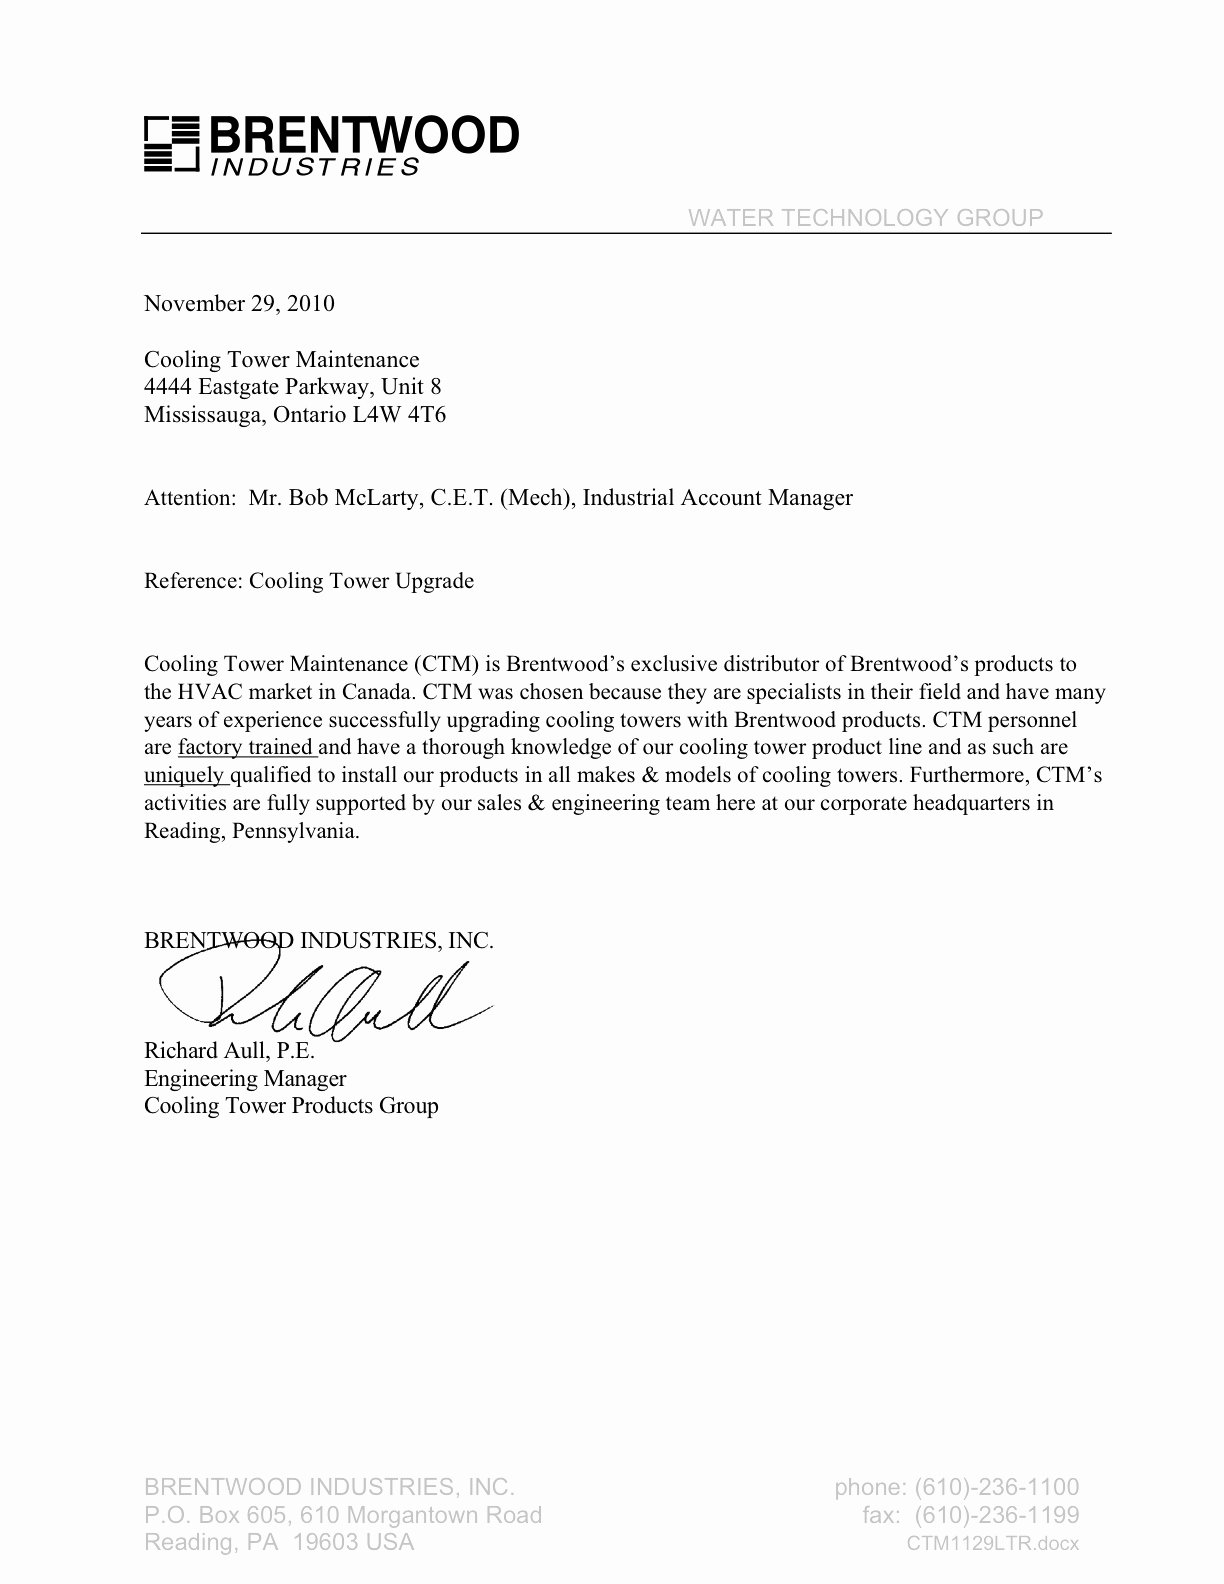 Letter Of Recommendation or Reference Awesome Reference Letter All Maps